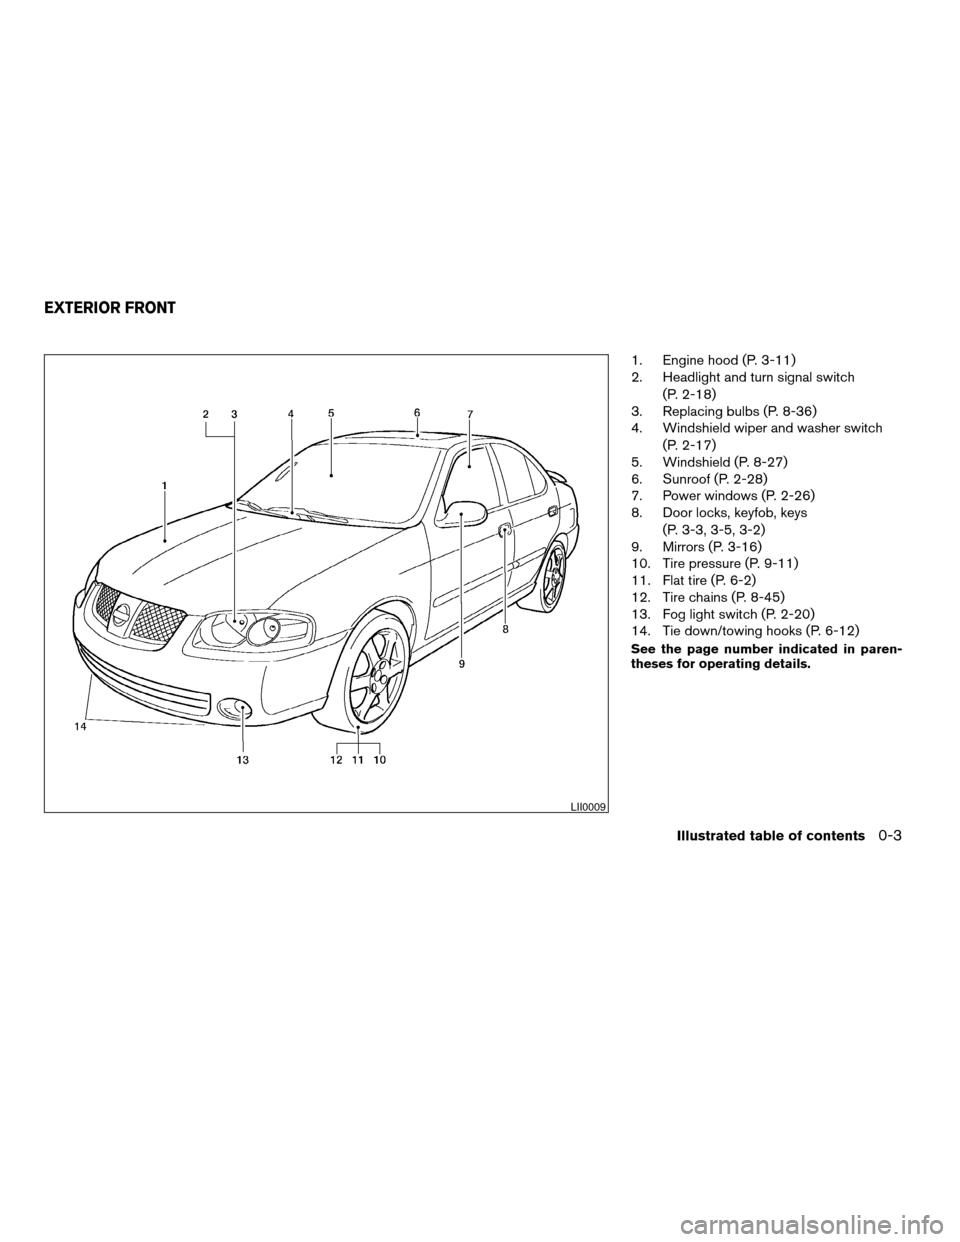 NISSAN SENTRA 2004 B15 / 5.G Owners Manual